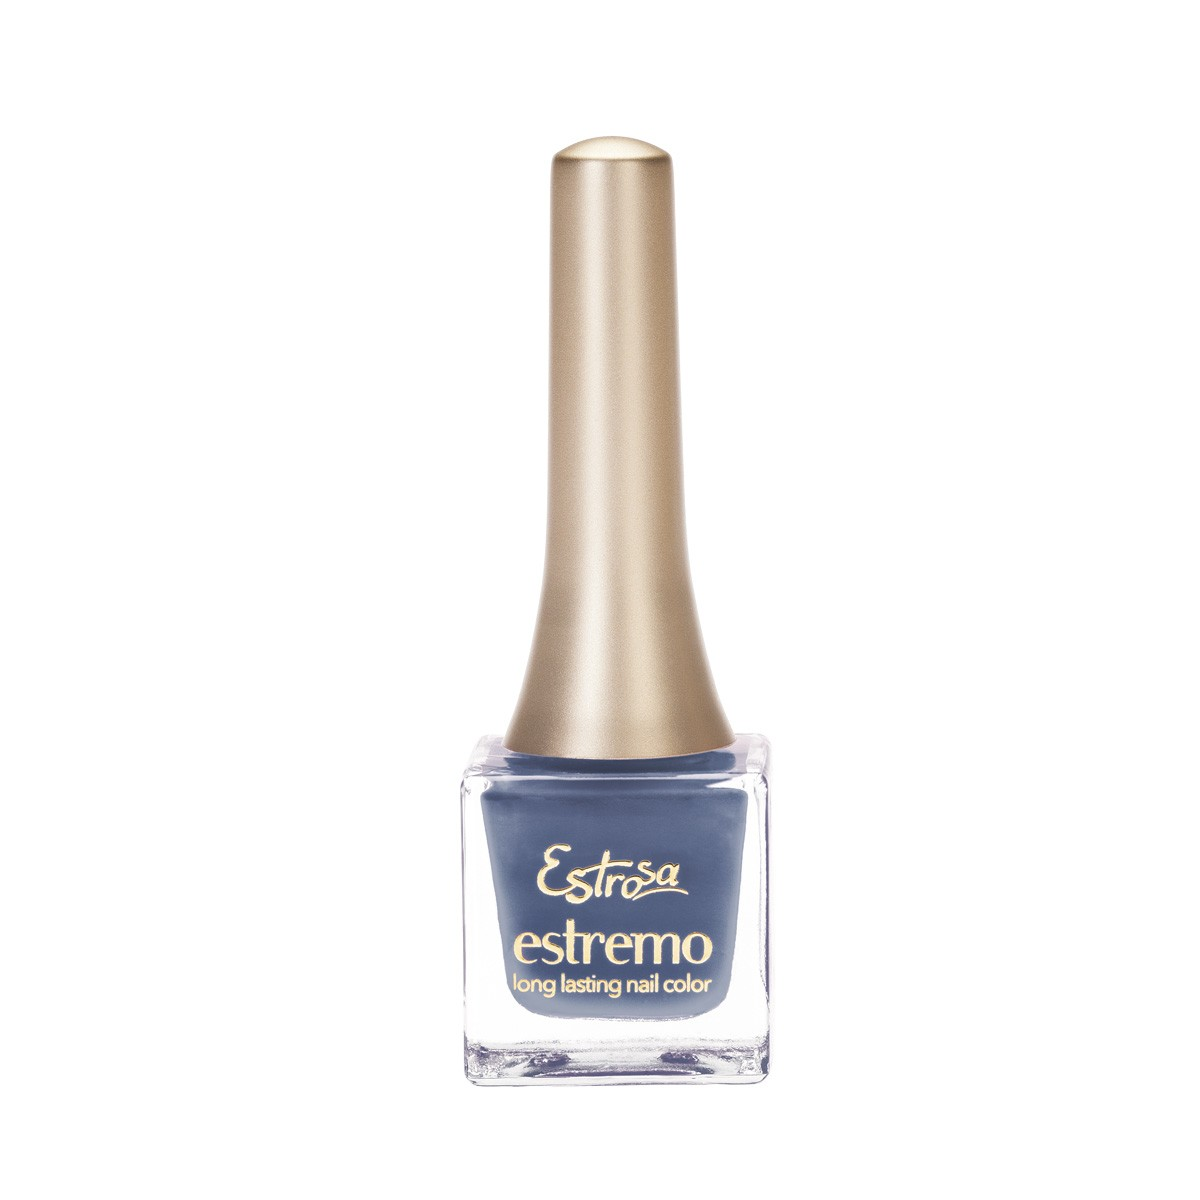 SMALTO LUNGA DURATA ESTREMO - TEMPEST CLOUD 12ML